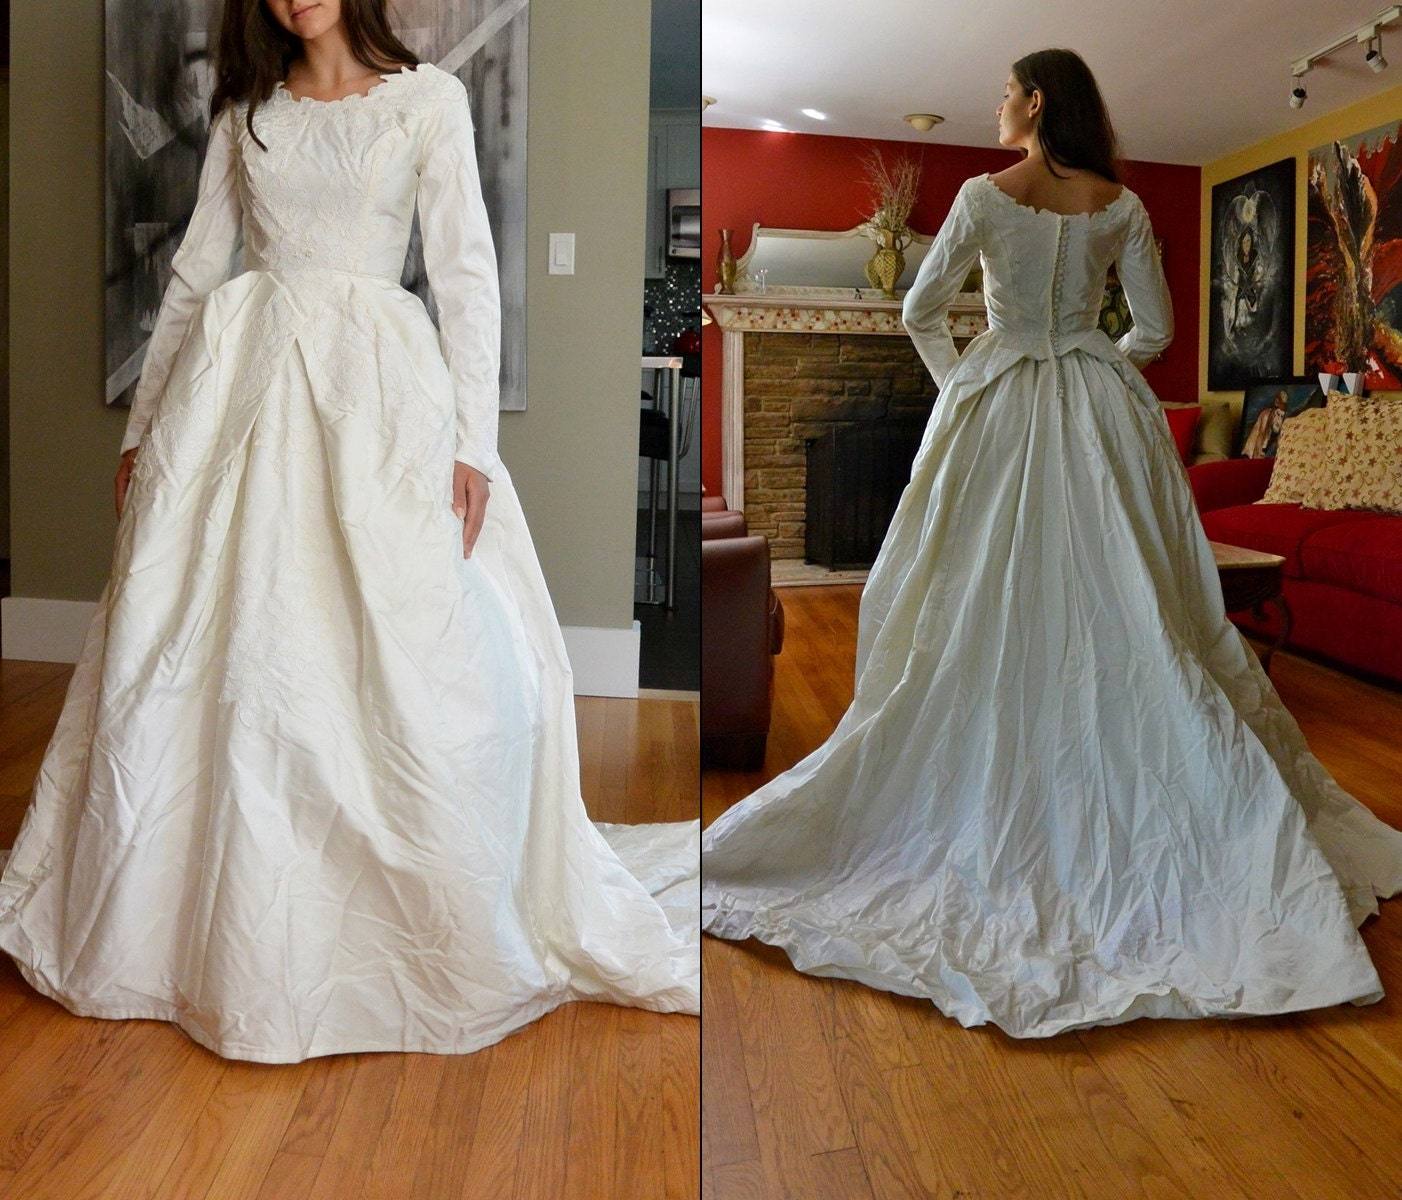 Vintage Wedding Dresses 1960s: Vintage 60s Wedding Dress / 1960s White Bridal Gown Full Skirt